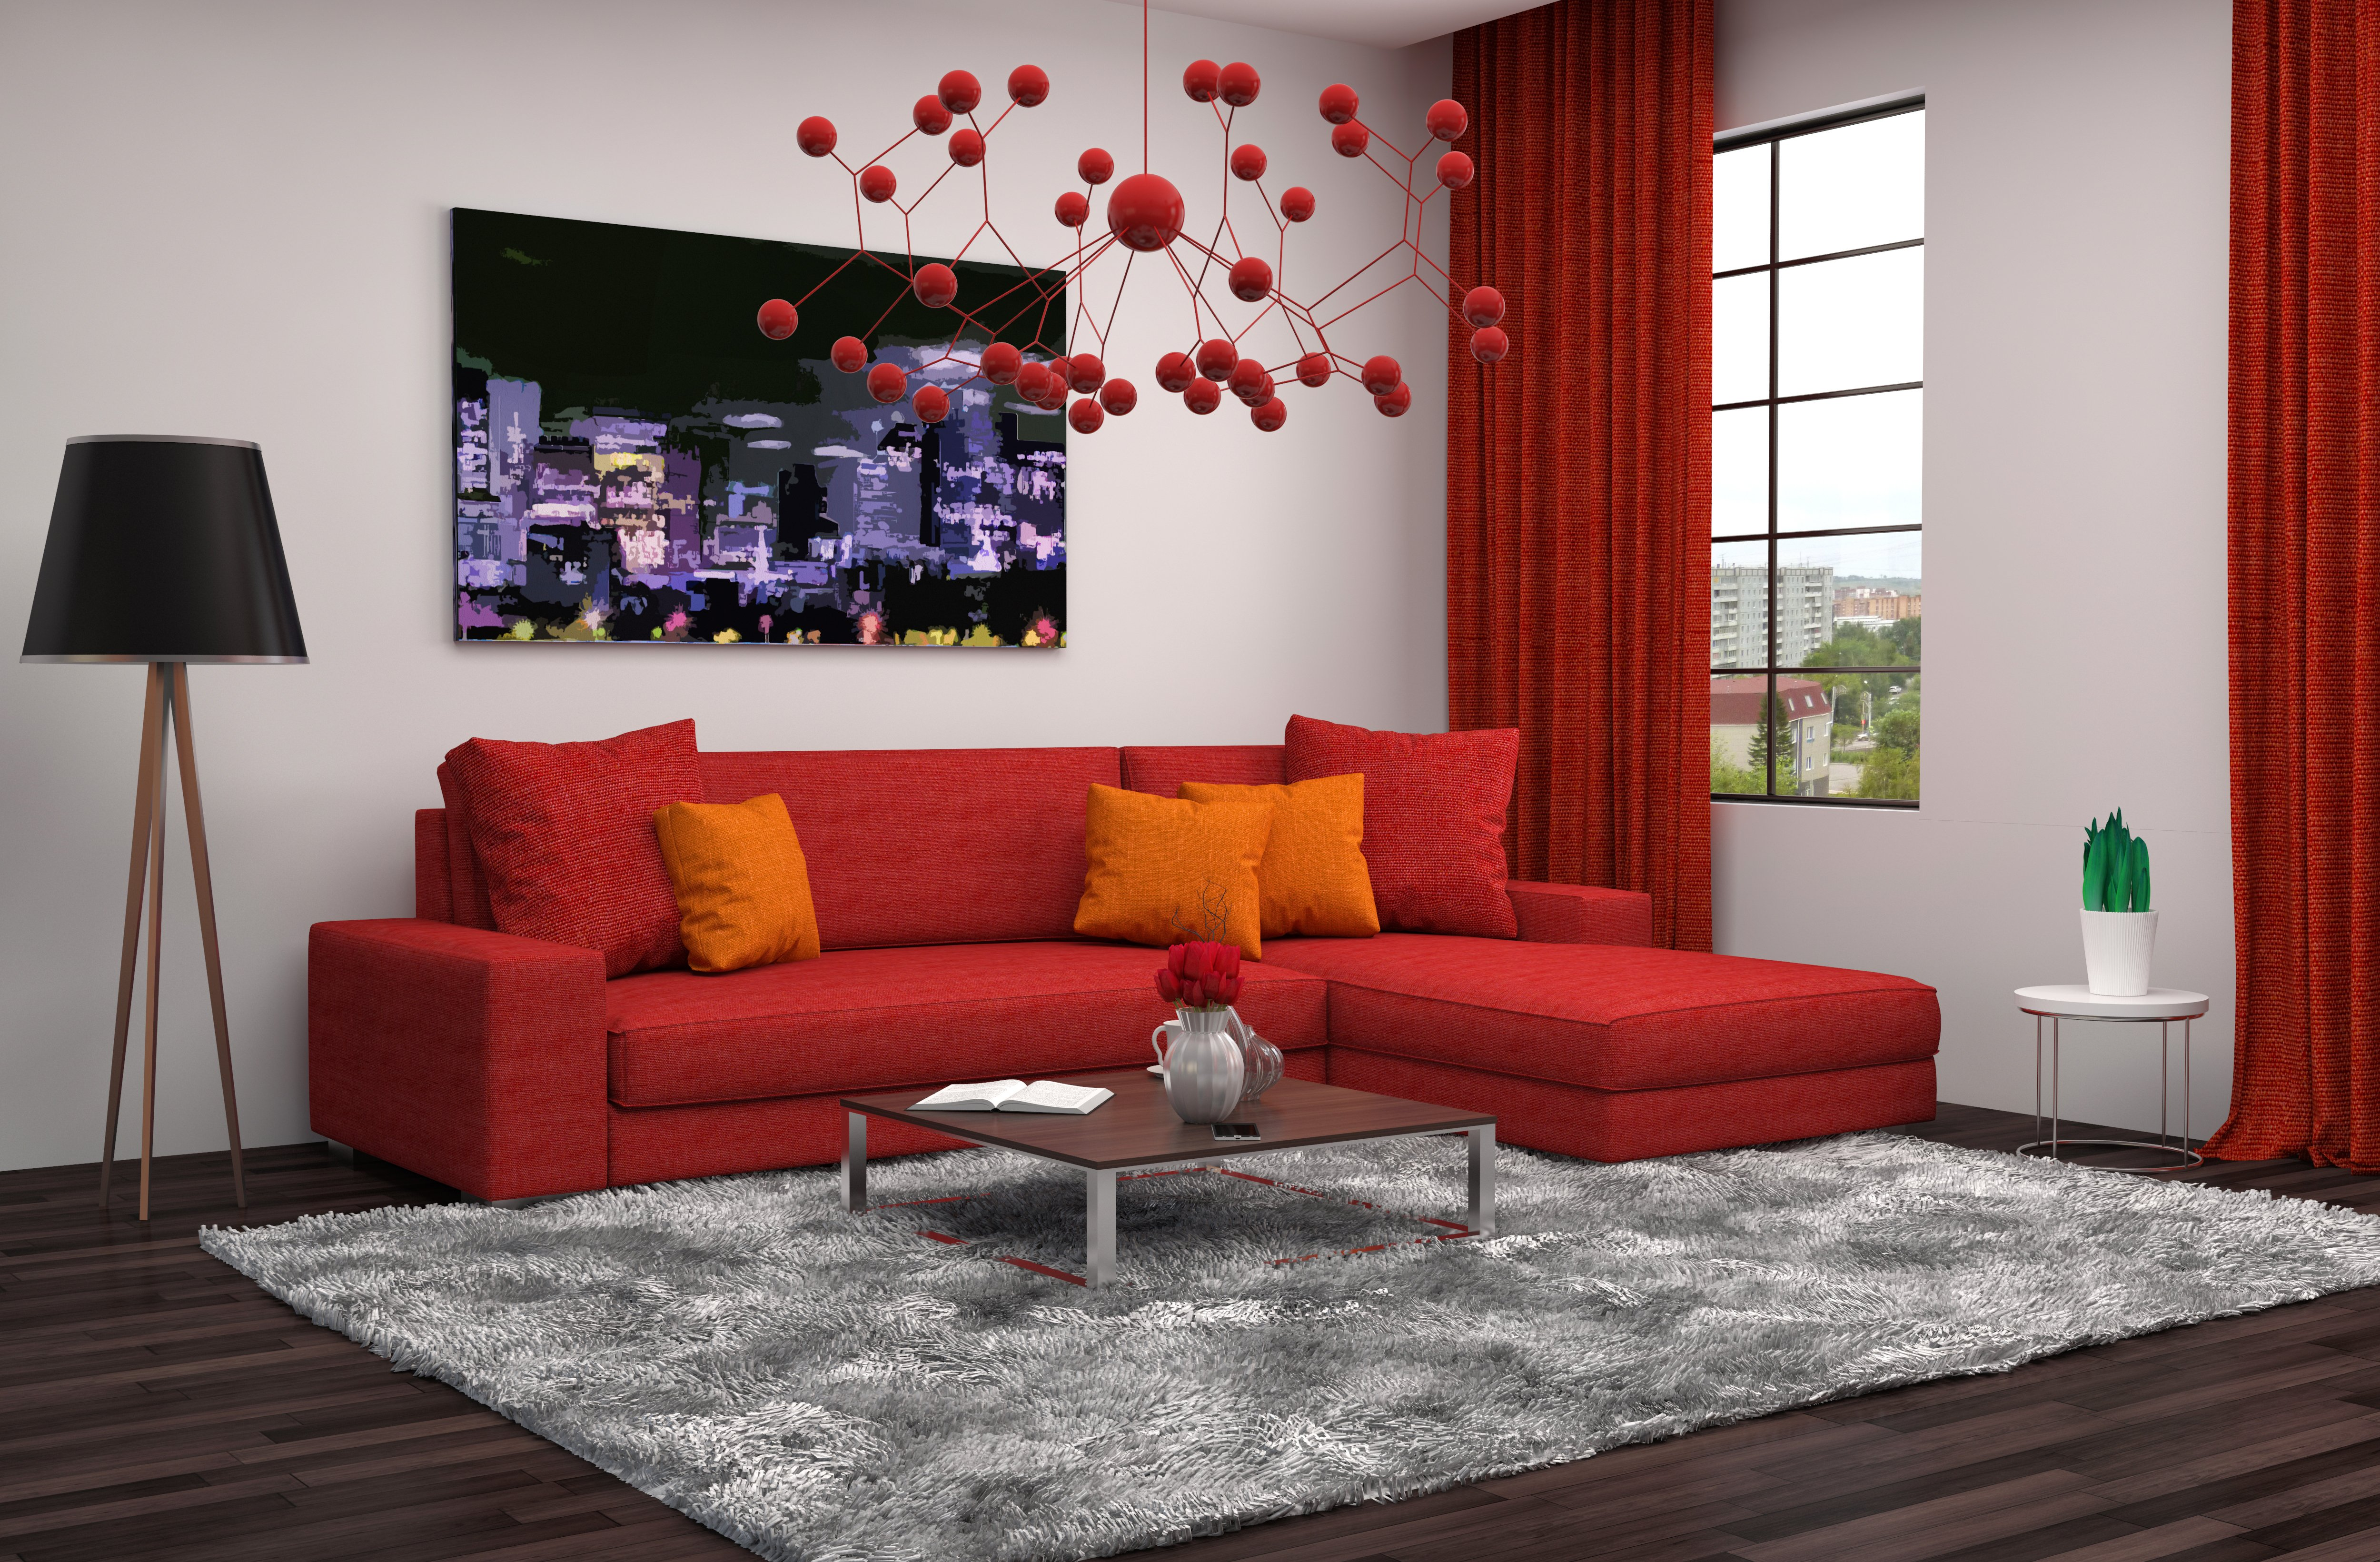 10 Clever Ideas For Your Living Room Curtains Homelane Blog